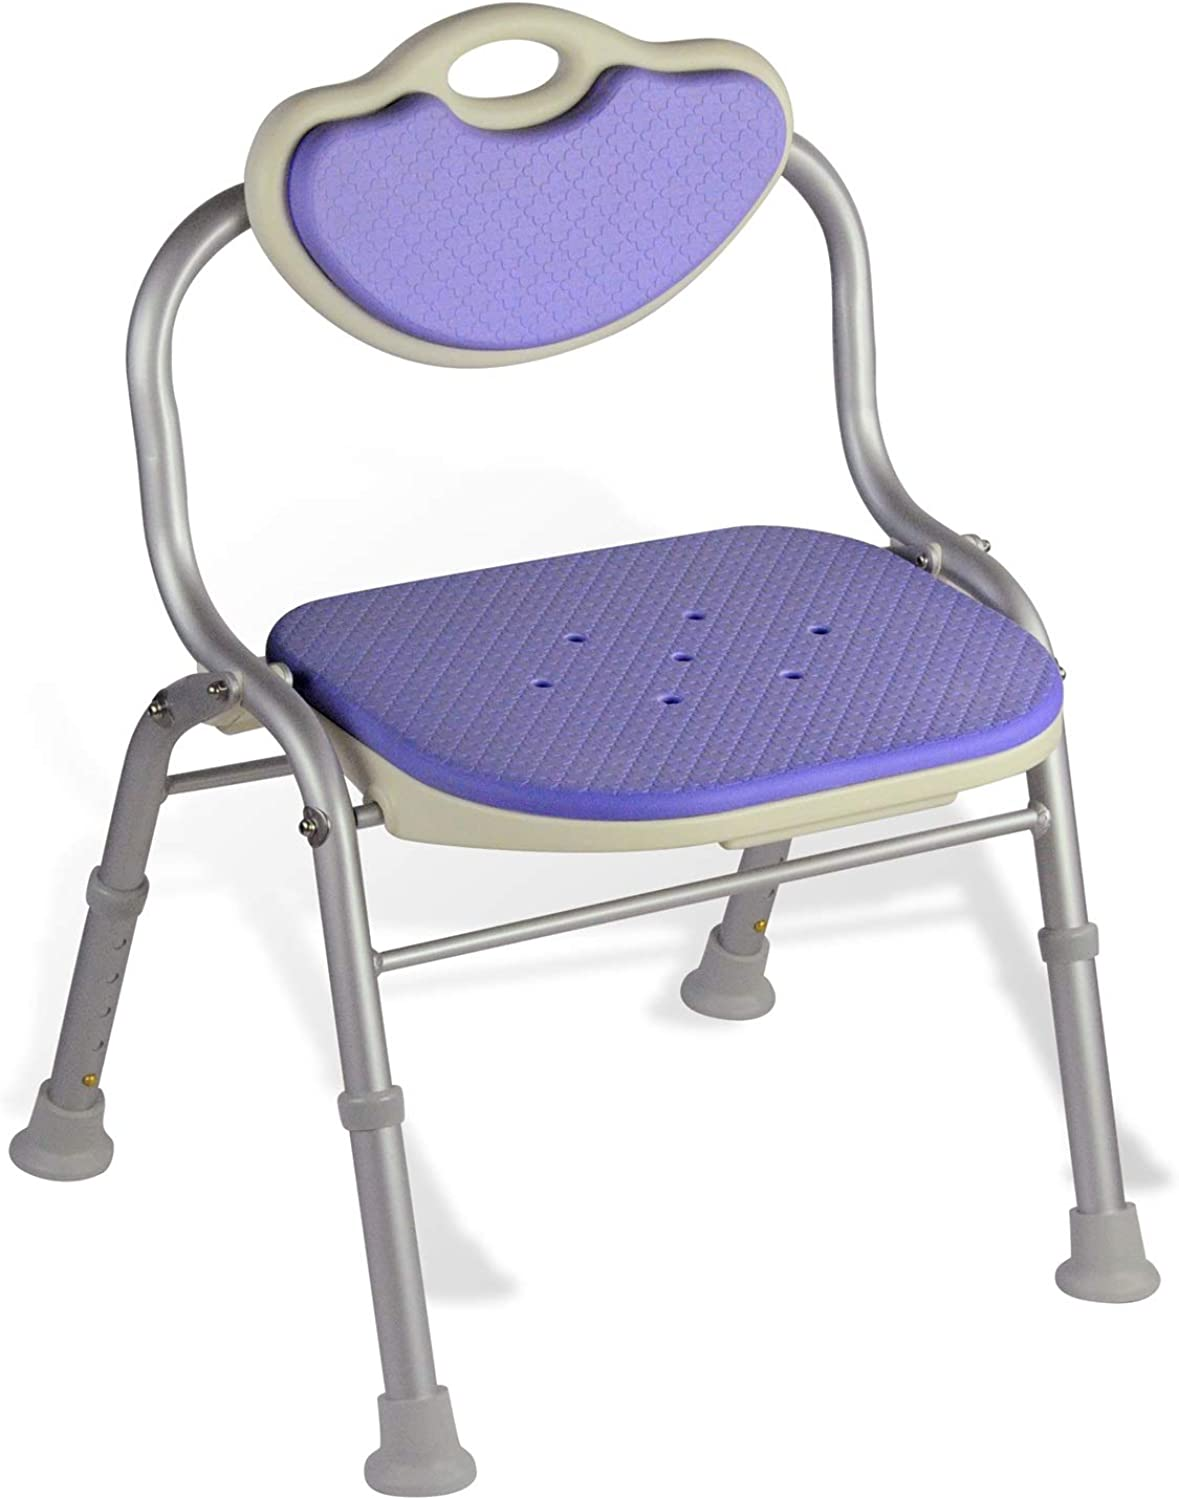 Folding Bath Seat Shower Bench Chair with Back for Old Men Pregnant Woman (color   Purple)